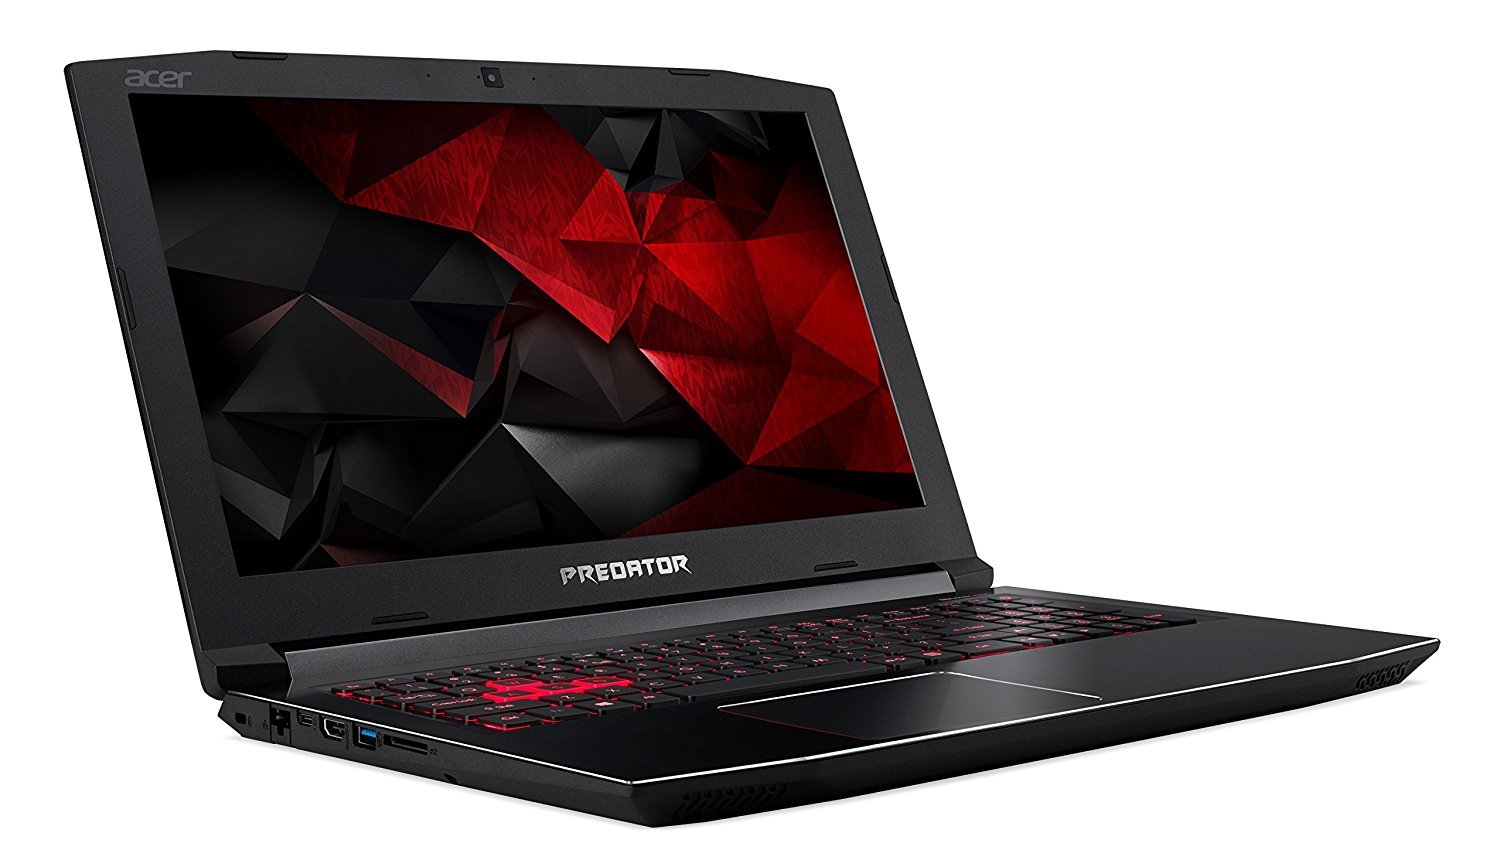 Top 5 Gaming Laptops Under $1500 in 2018: Our Editor's Pick